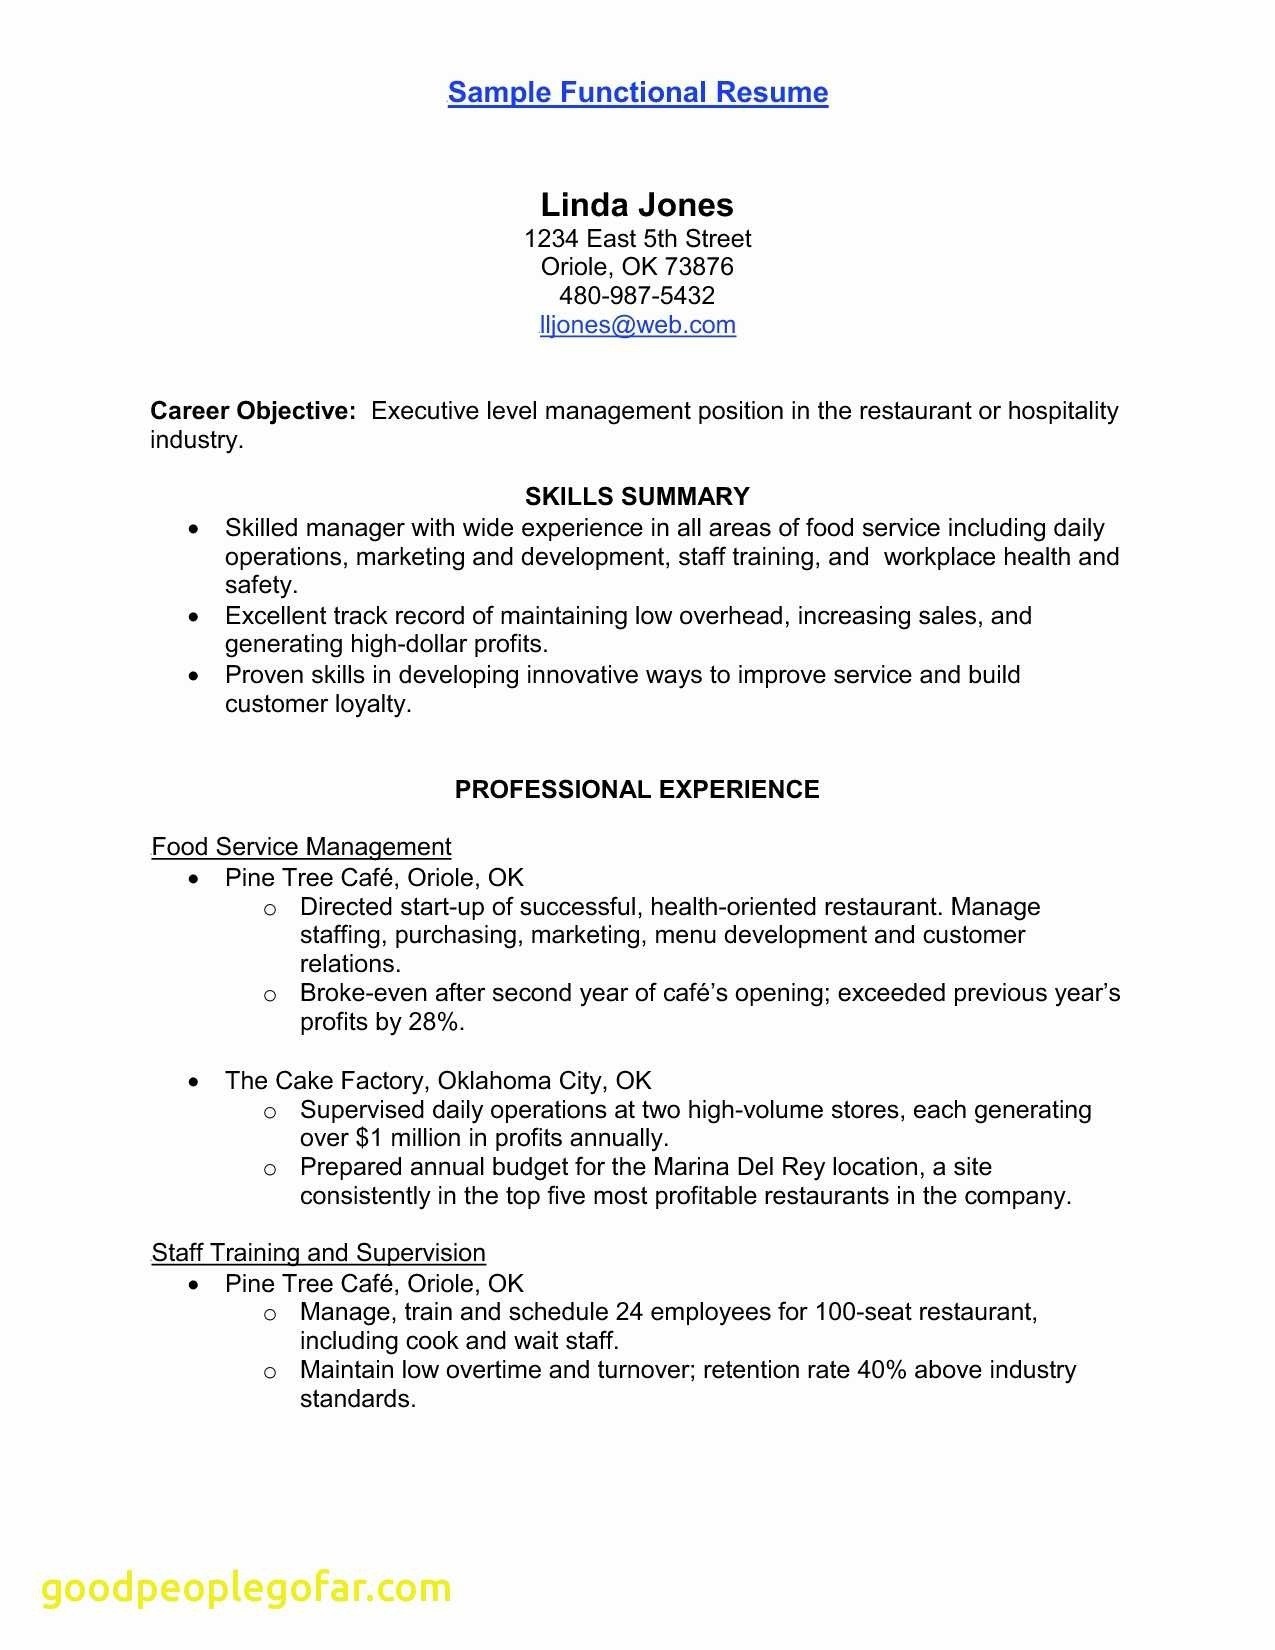 Entry Level Electrical Engineering Resume - Electrical Engineer Resume Ressume Template Lovely Type Resume